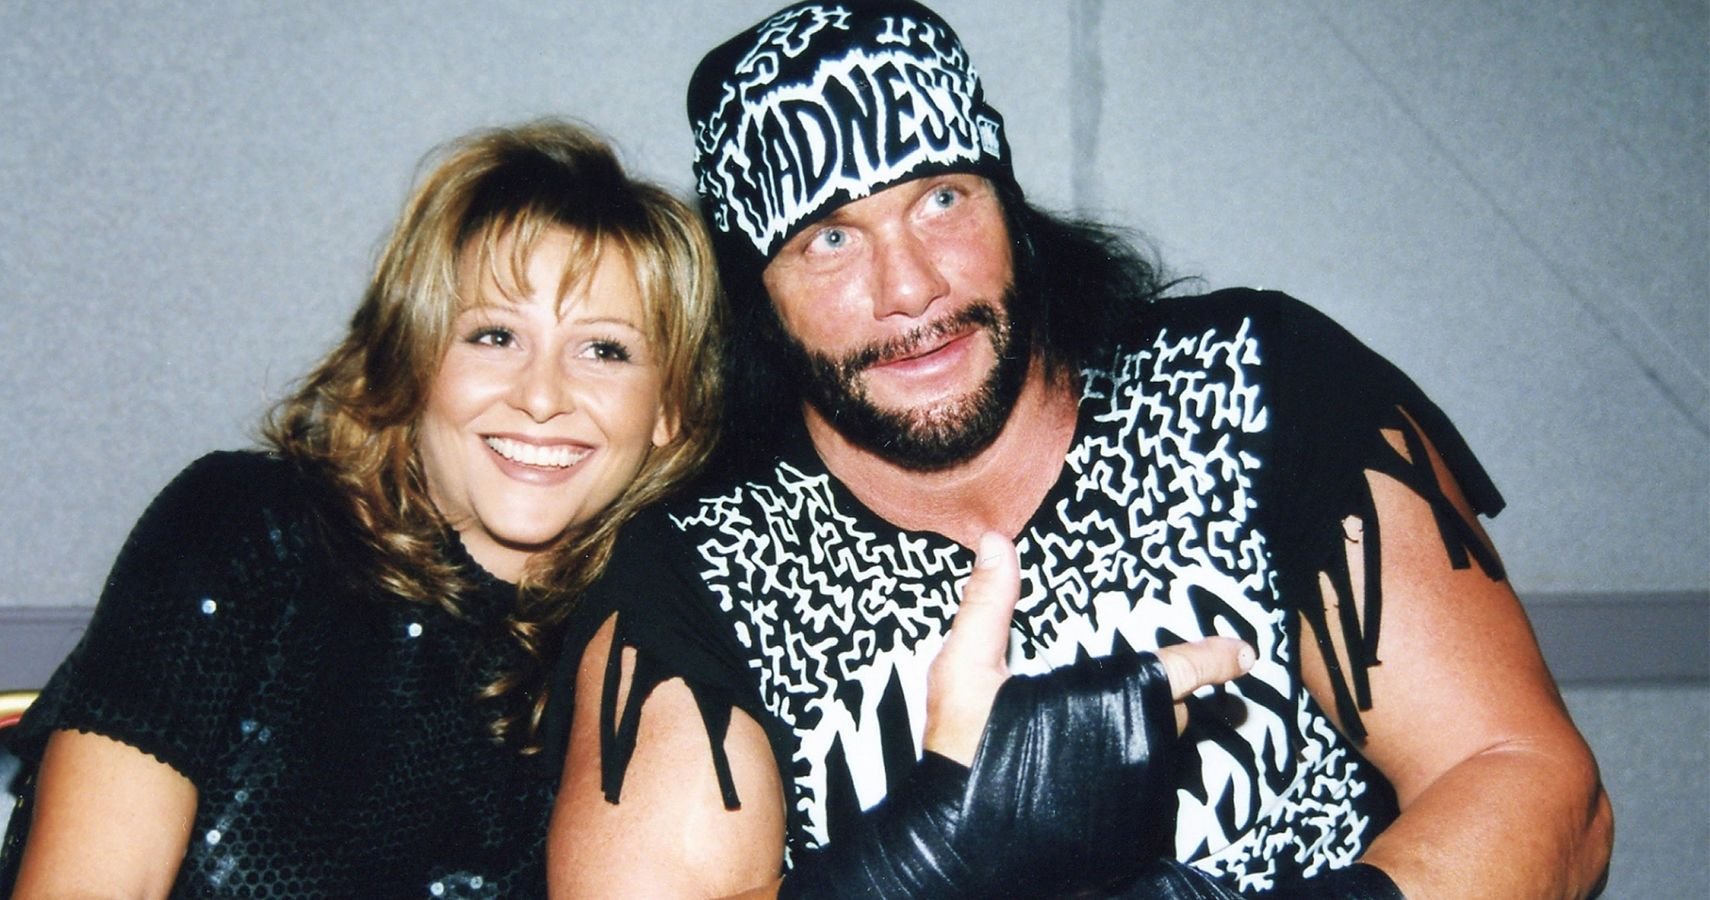 Wesley College Football >> 15 Things You Didn't Know About Randy Savage And Miss